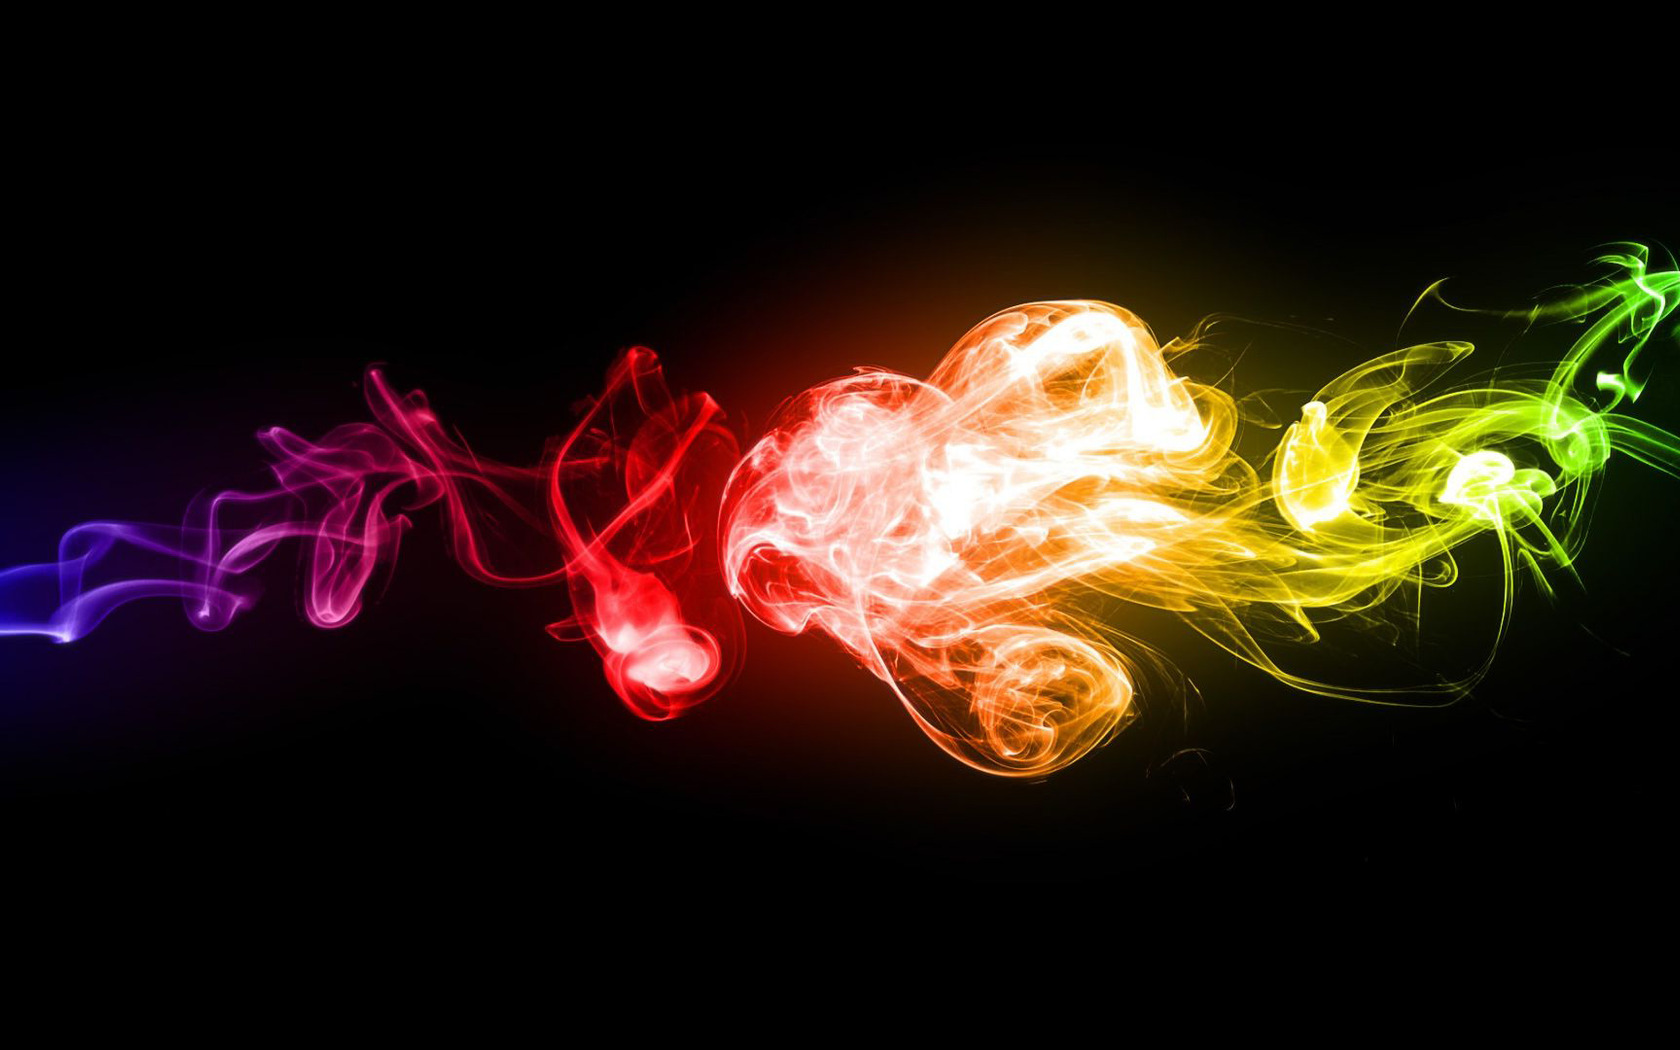 Colorful Smoke HD Walls Find Wallpapers 1680x1050